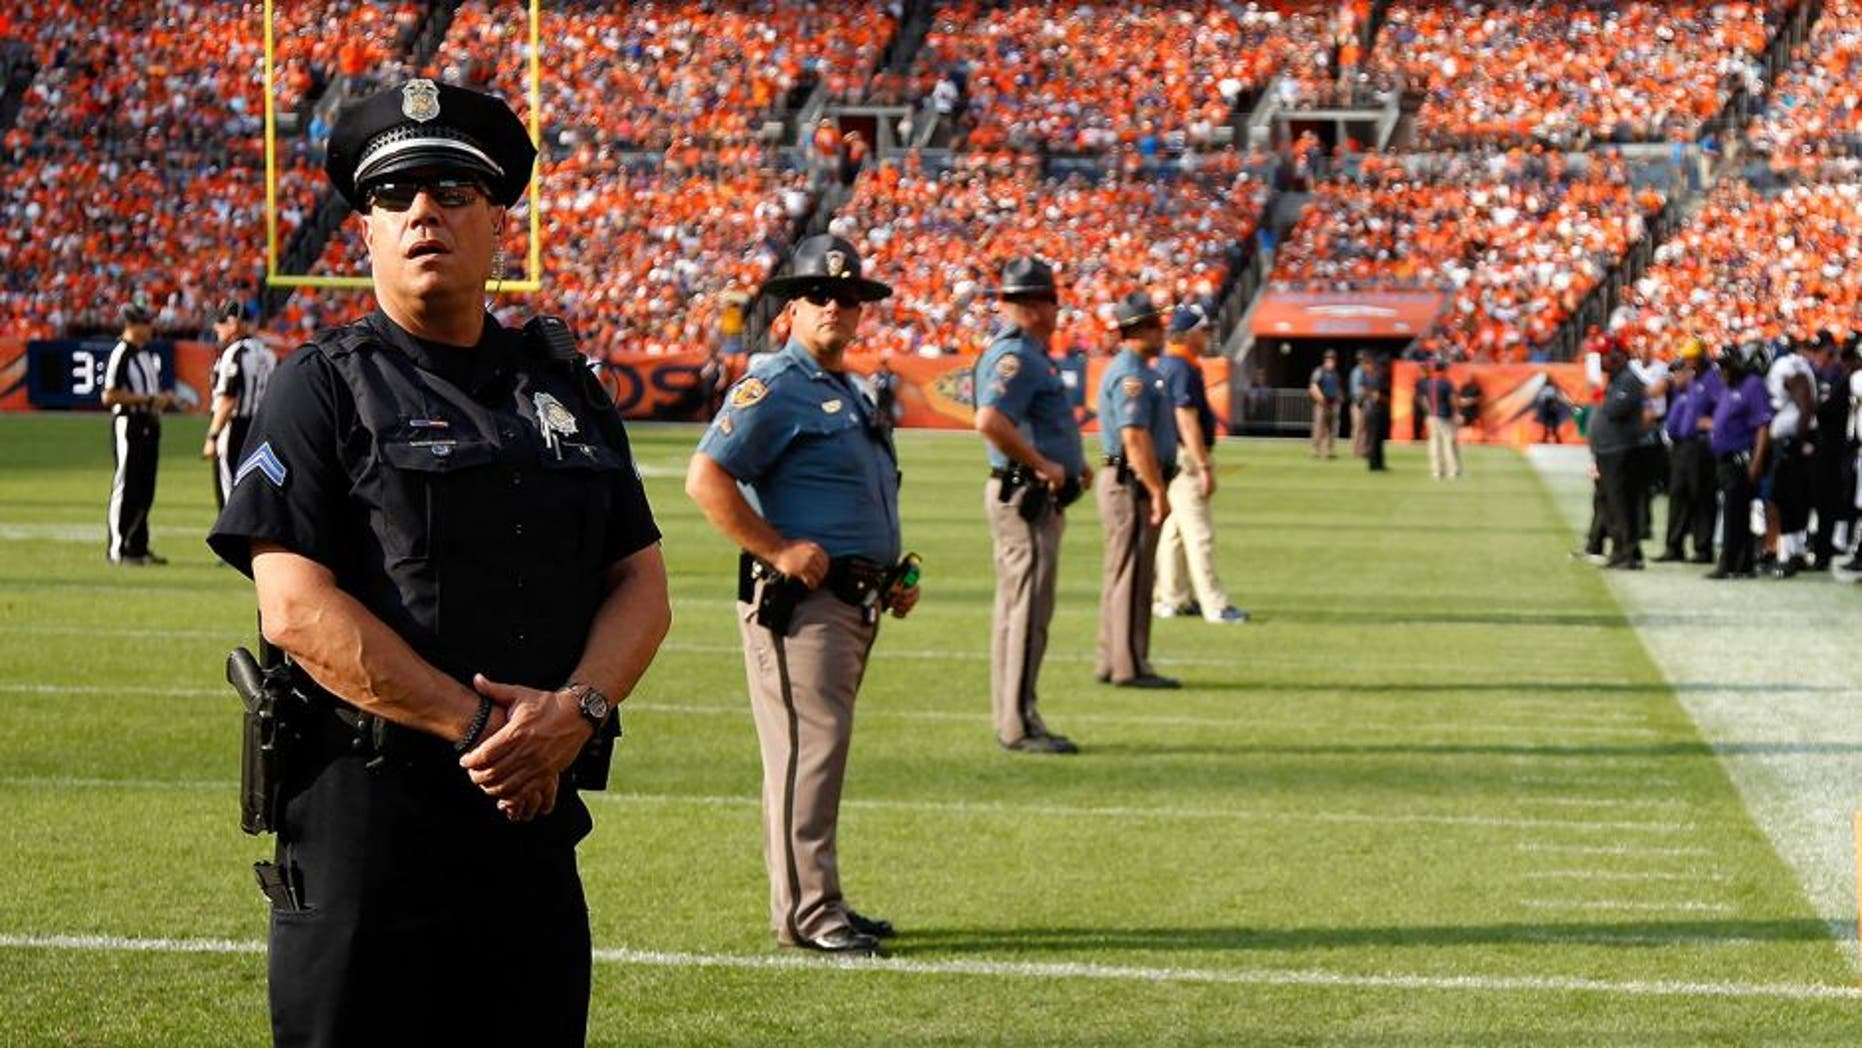 DENVER, CO - SEPTEMBER 13: Law enforcement officers provide security on the field during a break in the action between the Baltimore Ravens and the Denver Broncos at Sports Authority Field at Mile High on September 13, 2015 in Denver, Colorado. The Broncos defeated the Ravens 19-13. (Photo by Doug Pensinger/Getty Images)